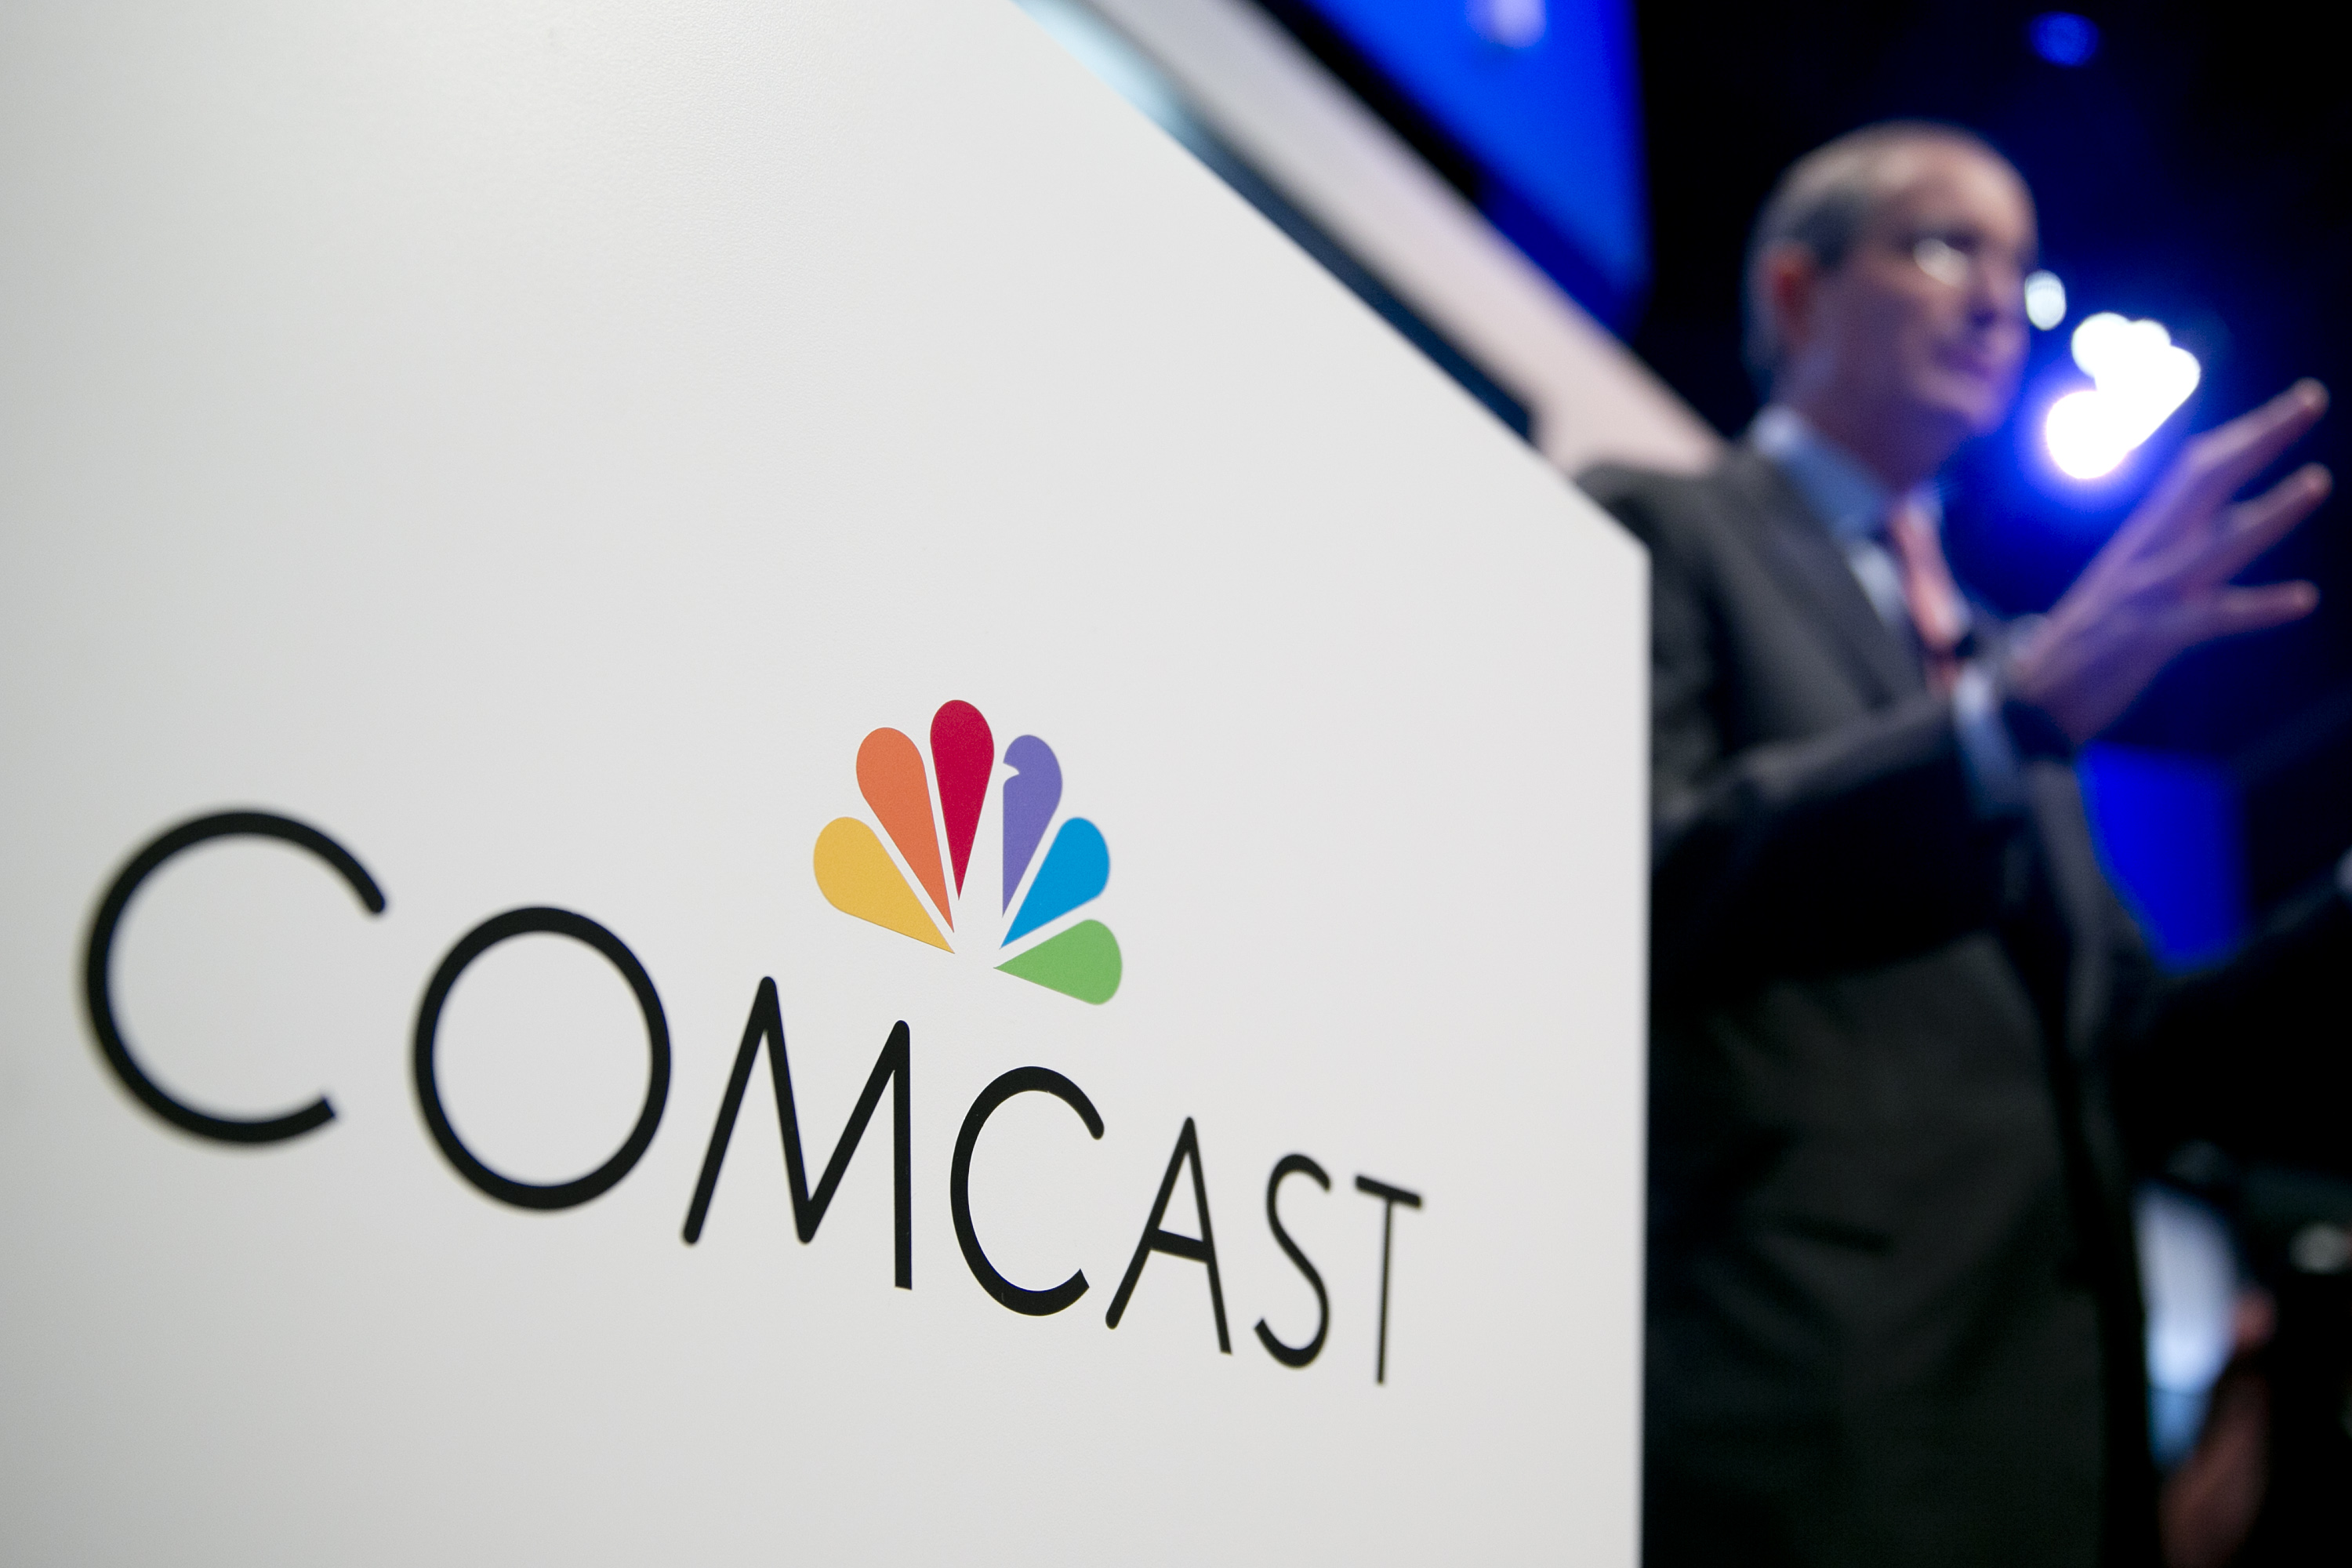 The Comcast Corp. logo is seen as Brian Roberts, chairman and chief executive officer of Comcast Corp. (R) speaks during a news conference in Washington on June 11, 2013.